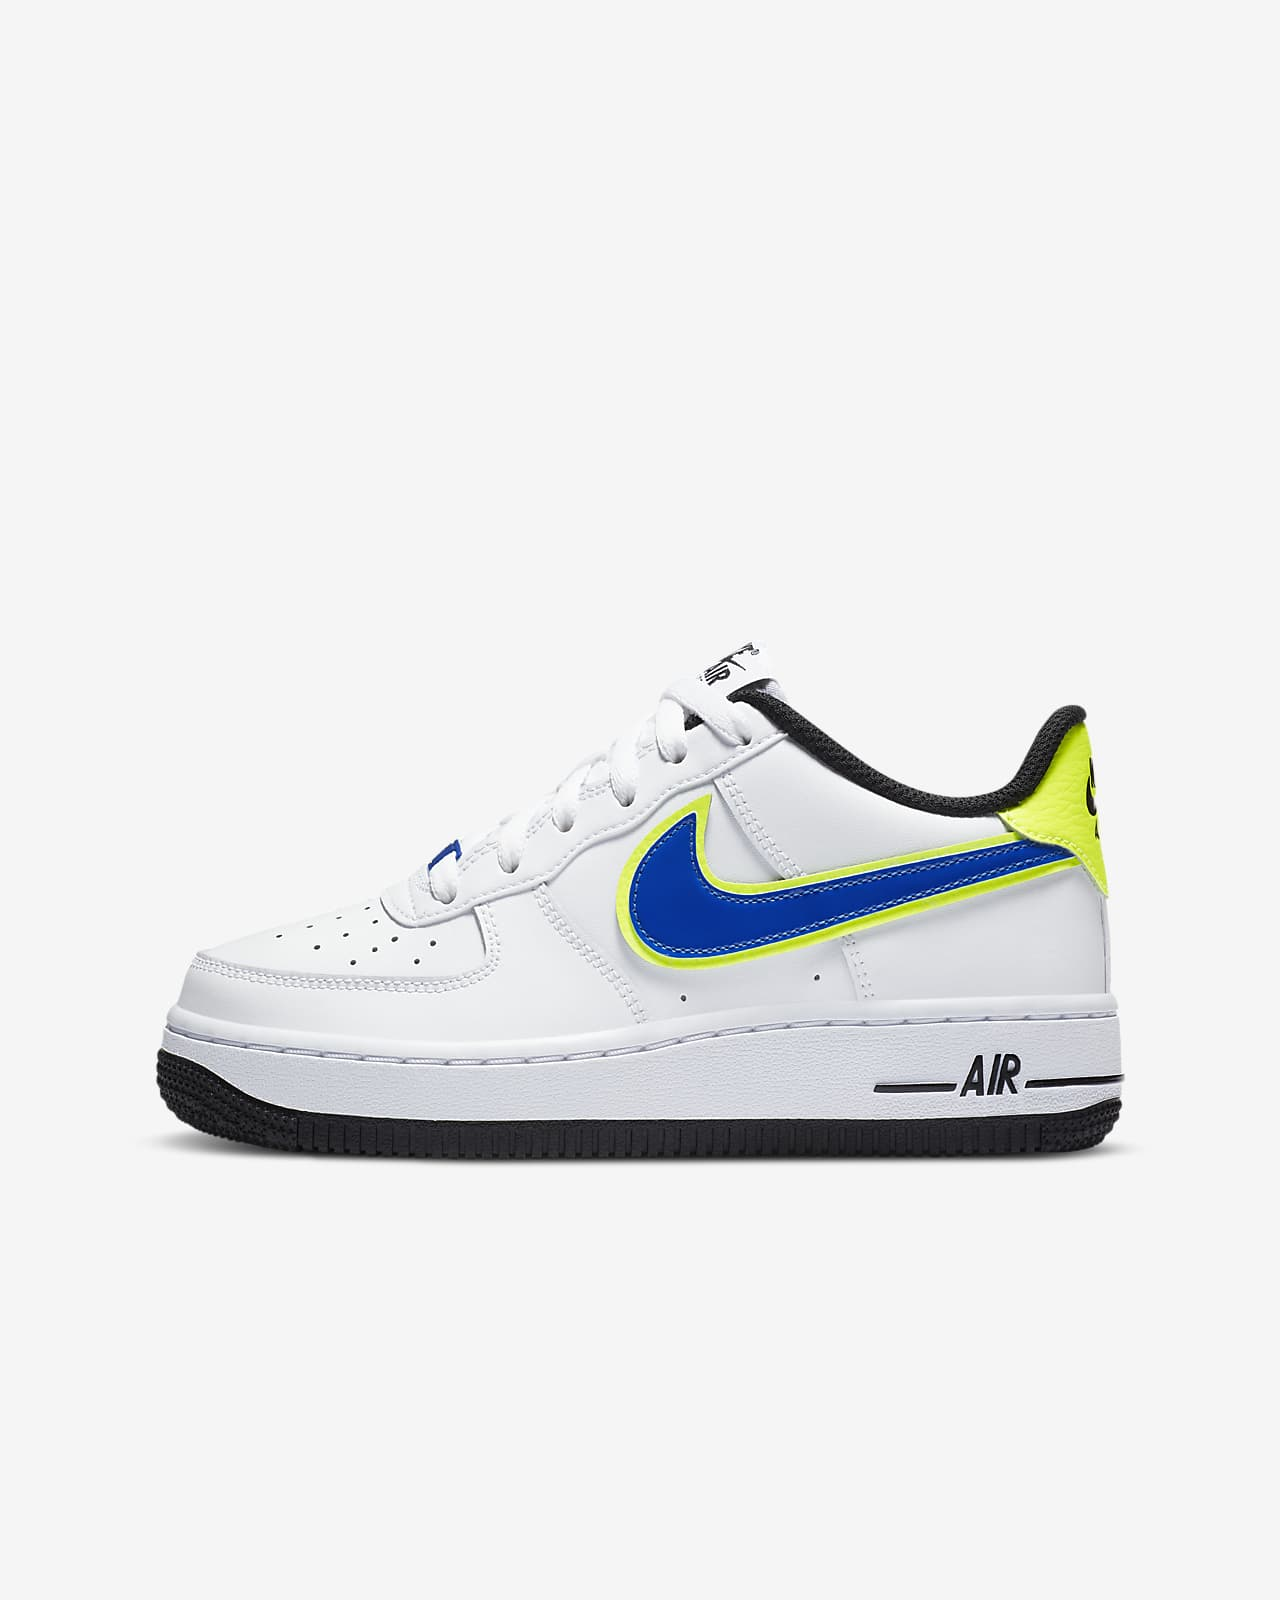 Nike Air Force 1 '07 Zapatillas - Niño/a